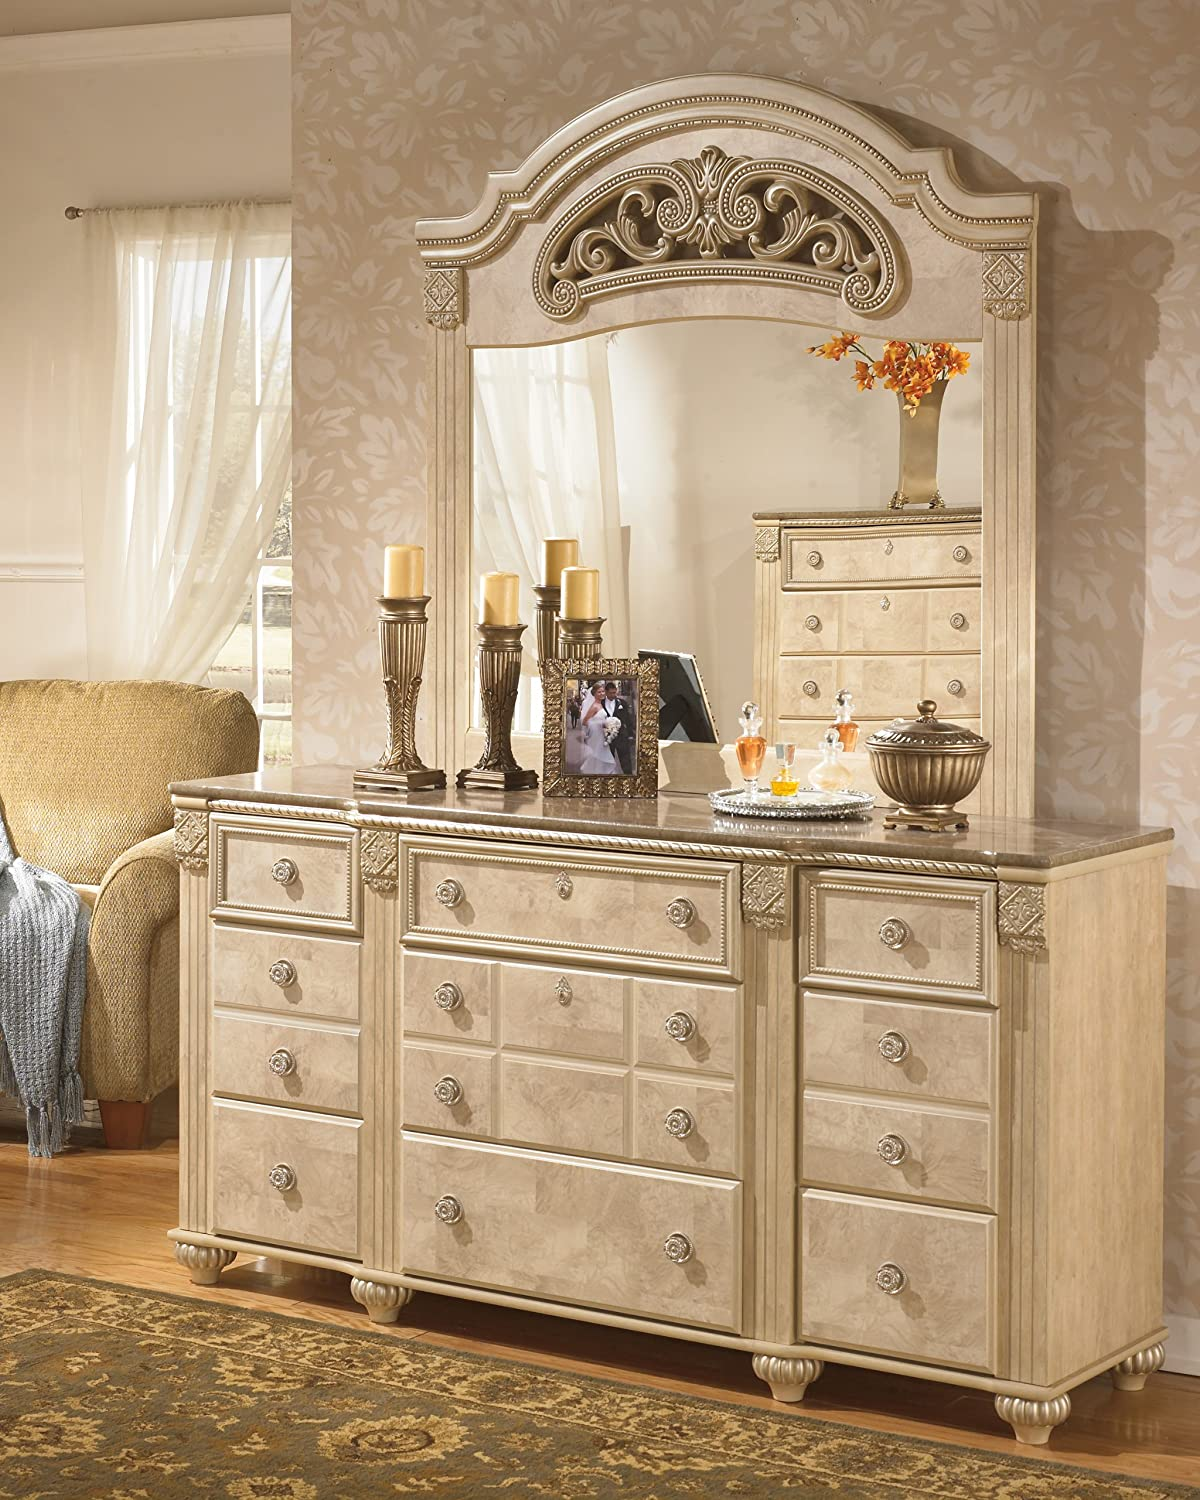 Amazon.com: Old World Light Opulent Finish Saveaha Bedroom Dresser With  Faux Marble Top: Kitchen U0026 Dining